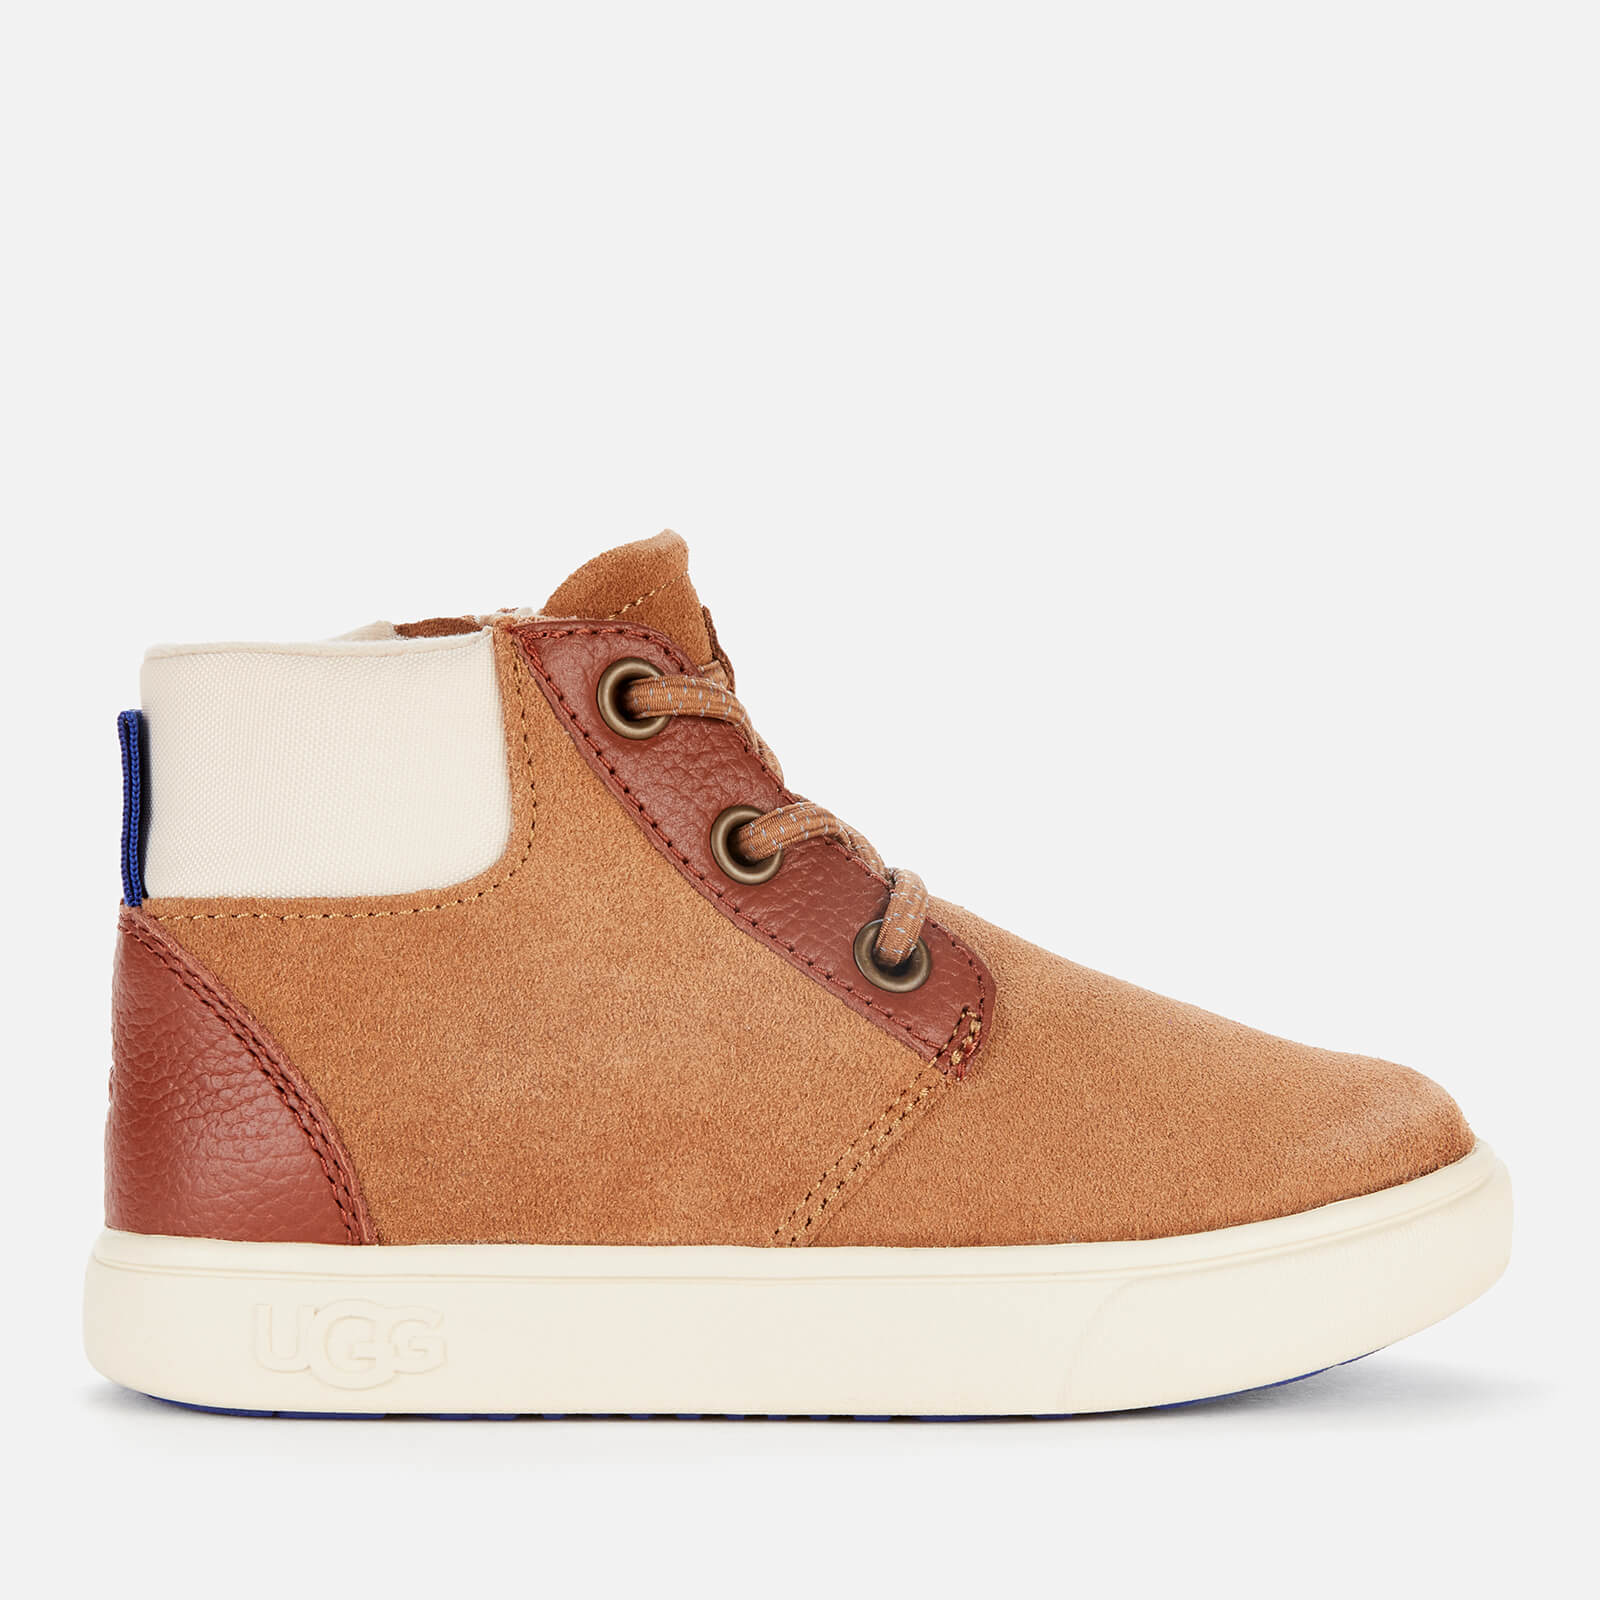 UGG Toddlers' JAYES High Top Sneakers- Chestnut - UK 5 Toddler